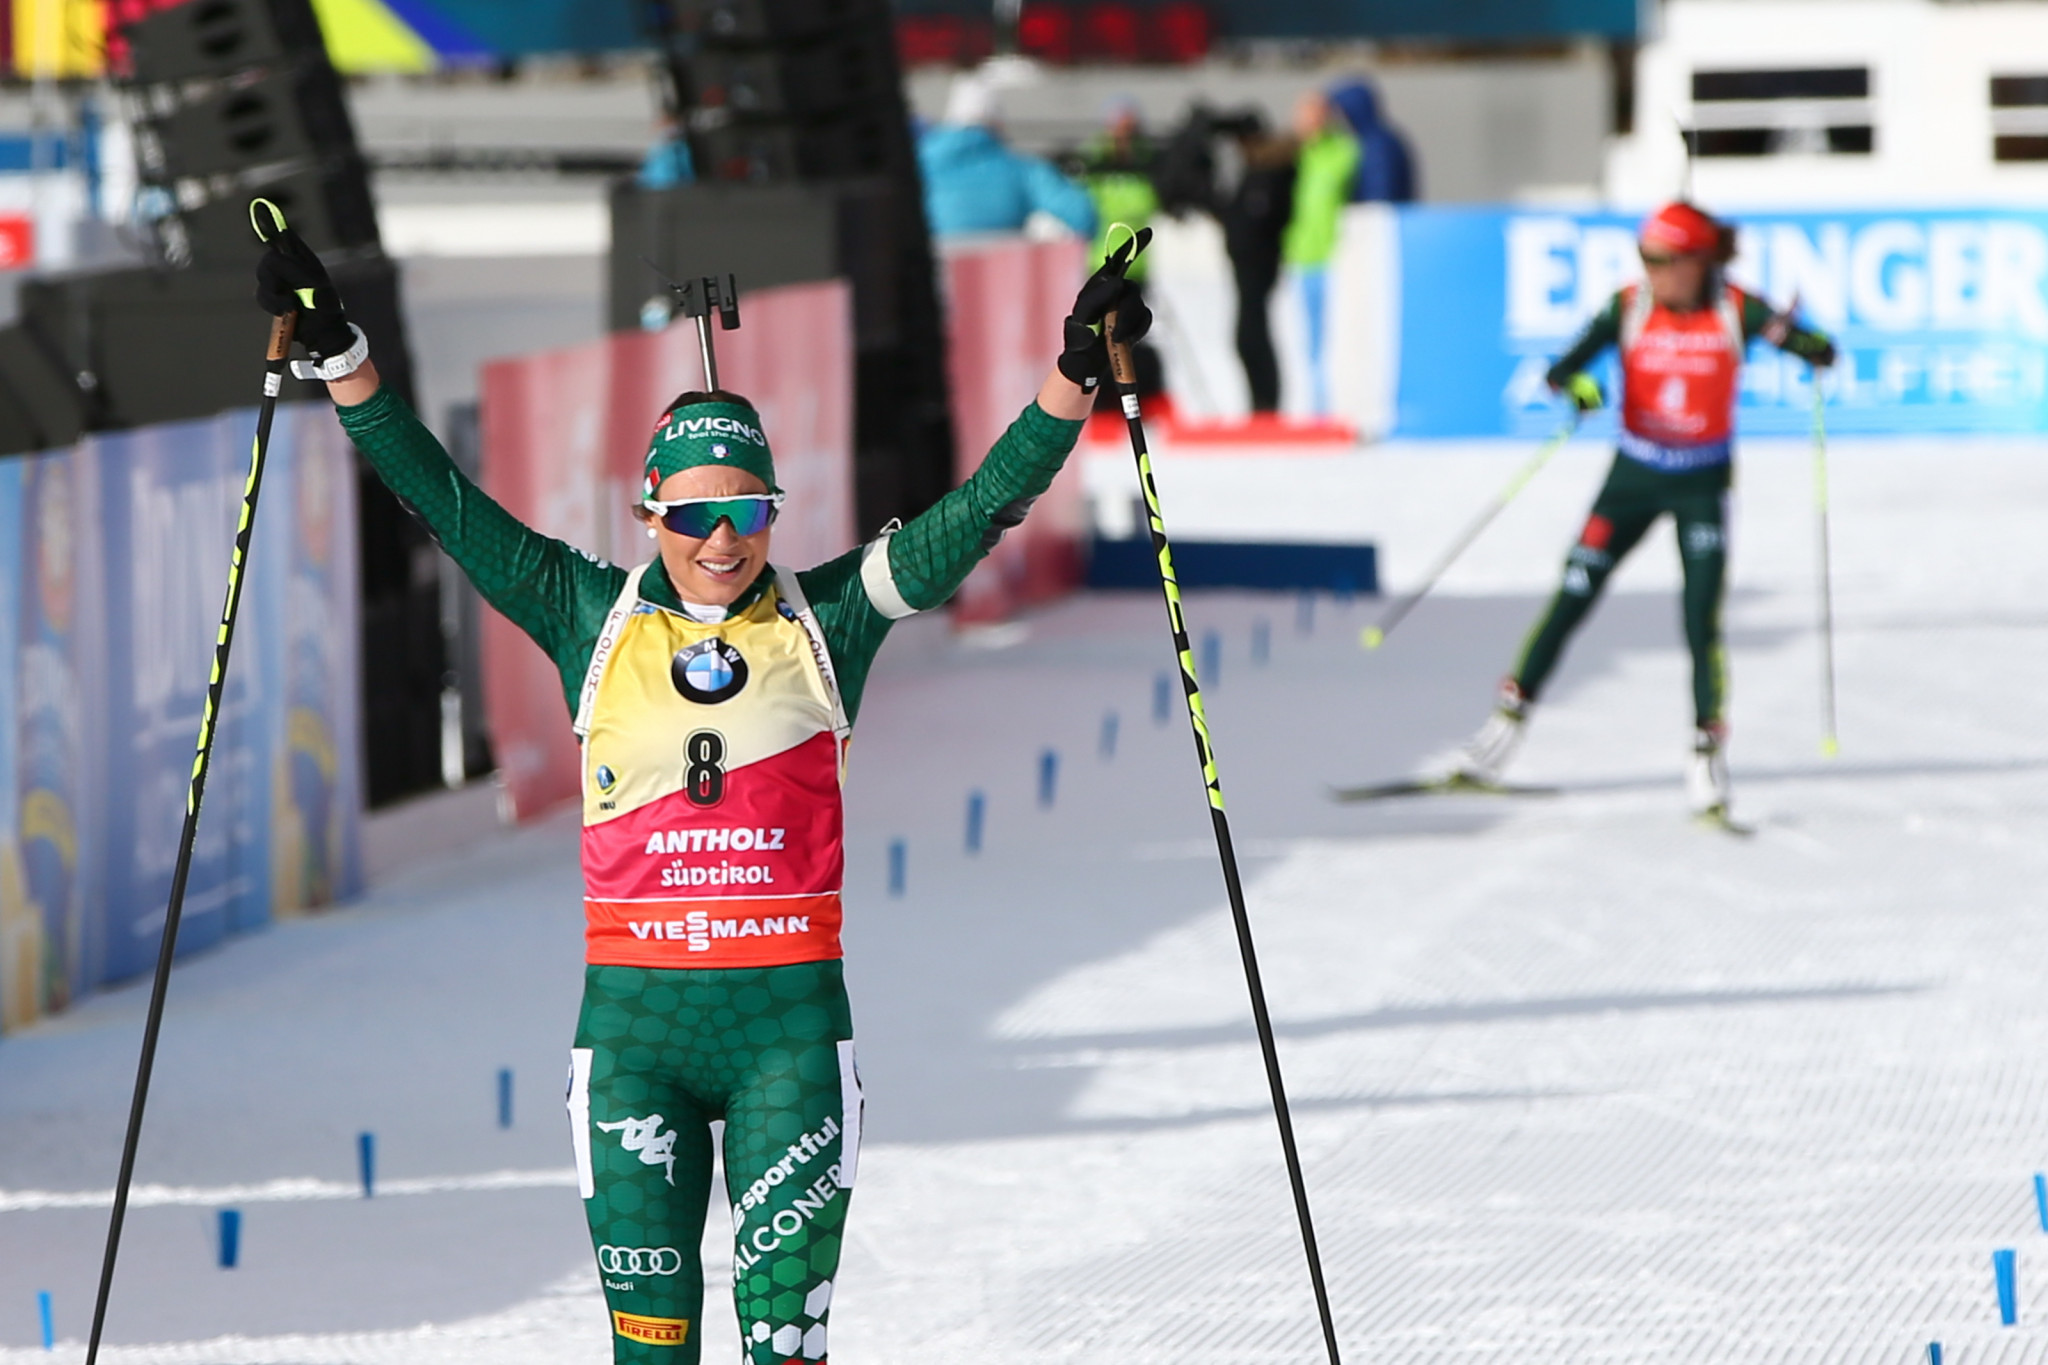 Italy's Dorothea Wierer maintained her lead at the top of the overall standings with victory in the women's pursuit ©Getty Images